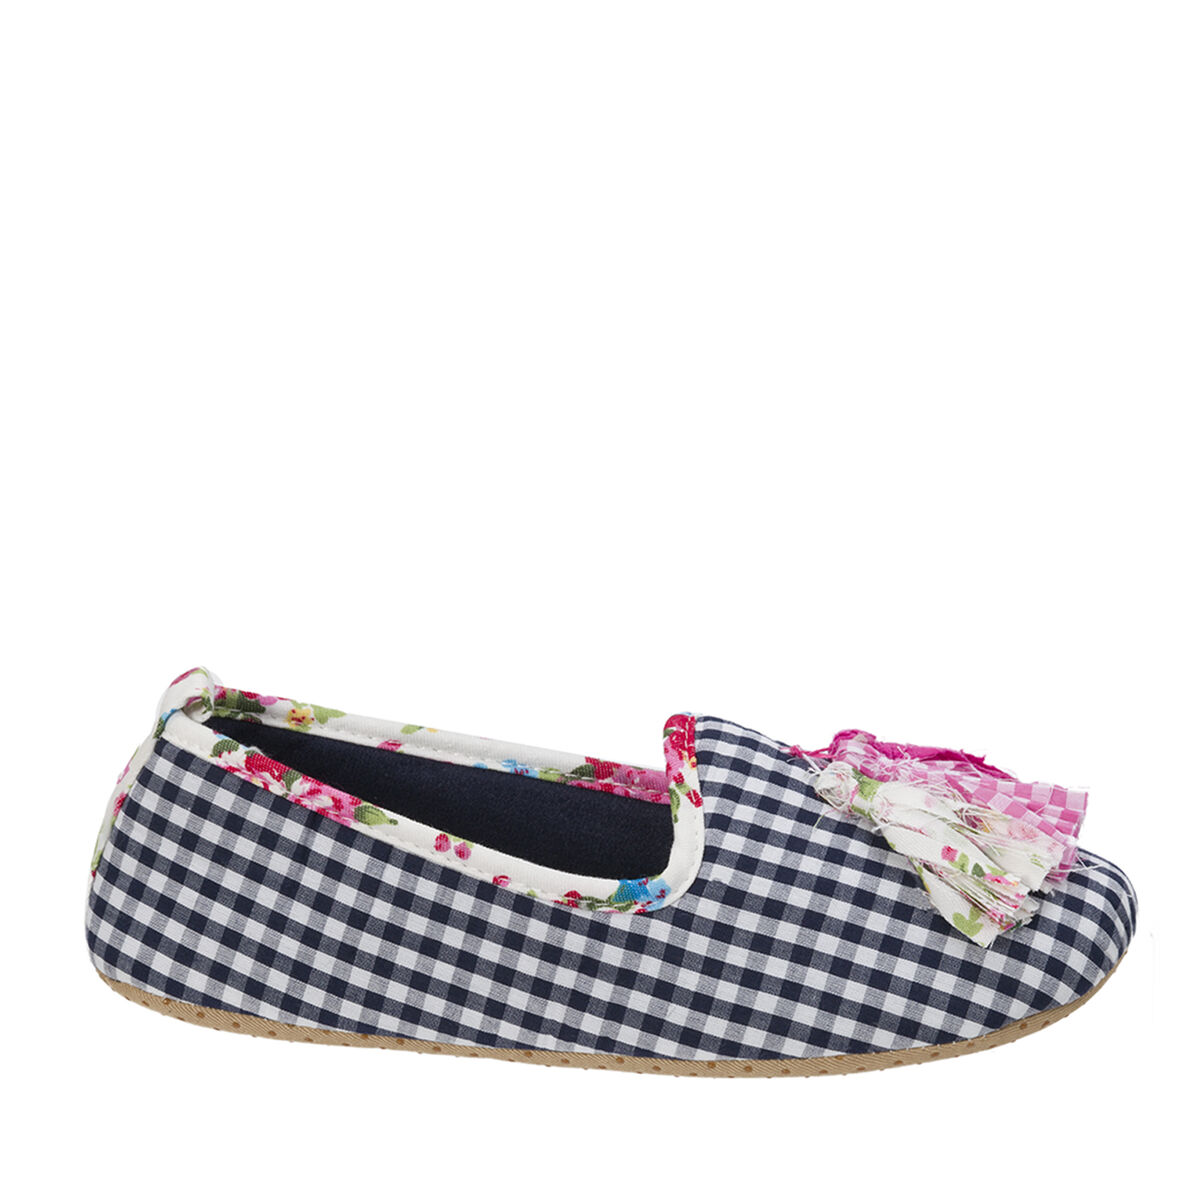 Women's Soft Soled Loafer With Tassel